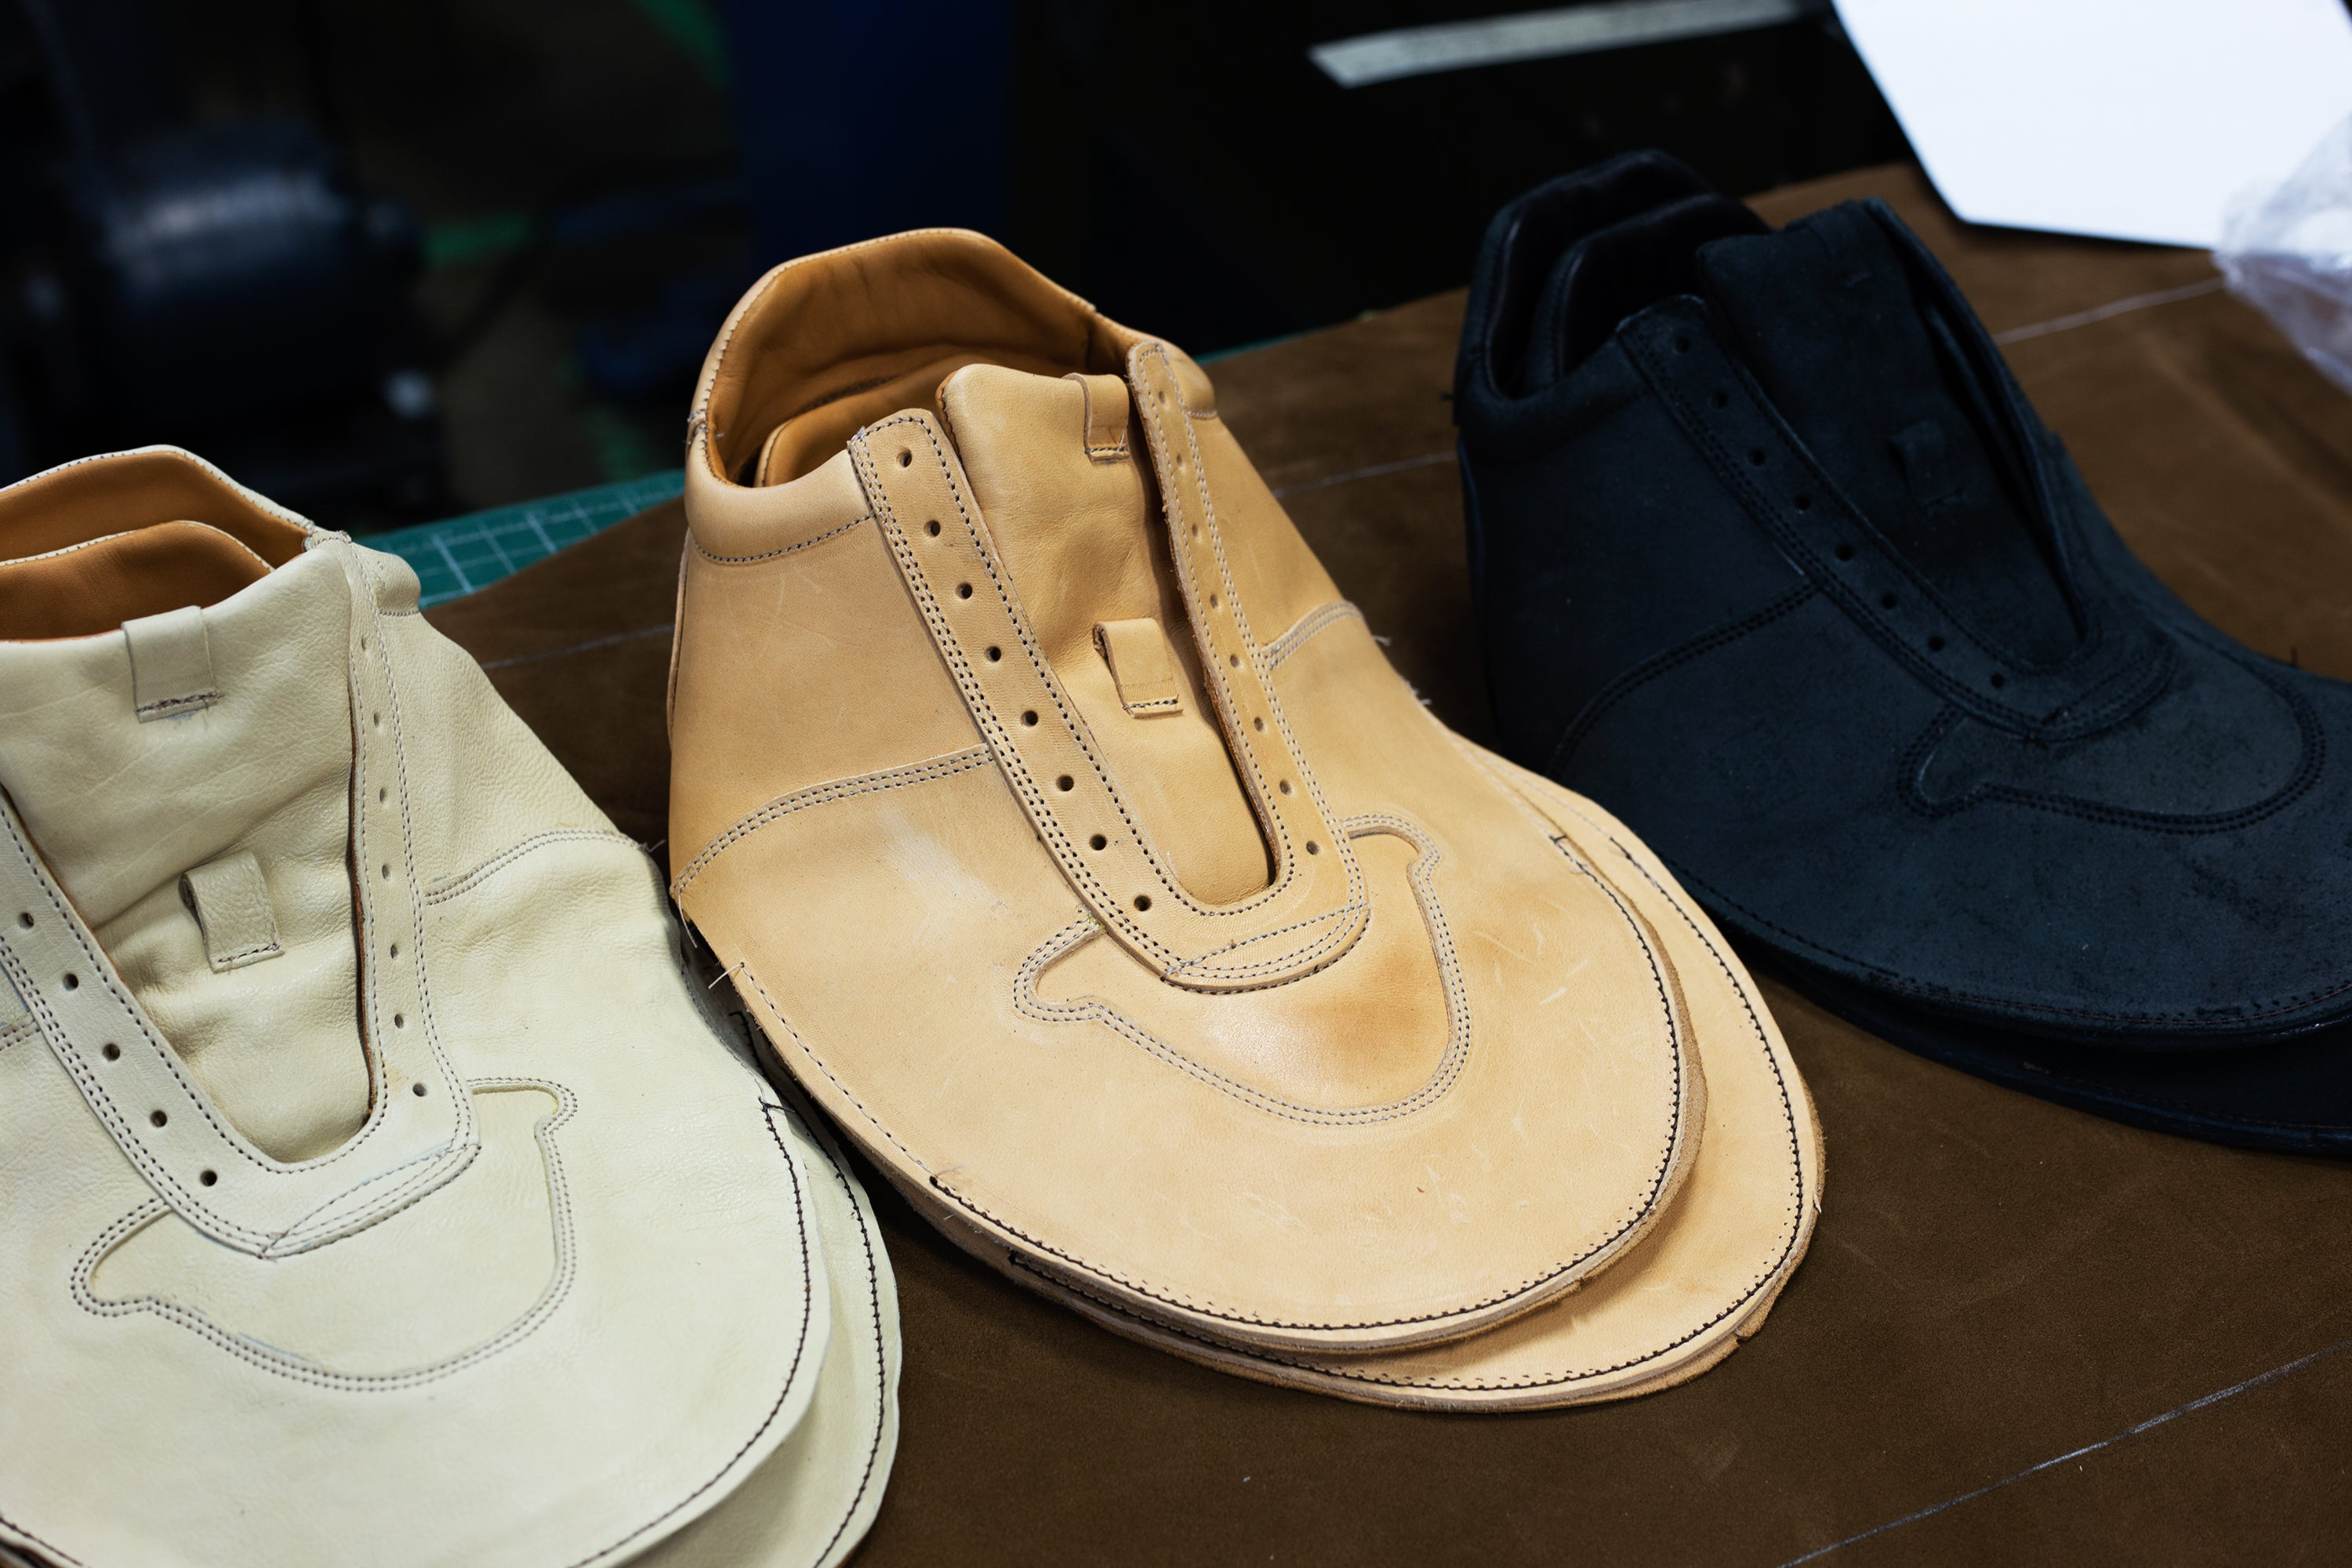 f6730c0aa3a2 Introducing the Sneaker — Viberg Boot